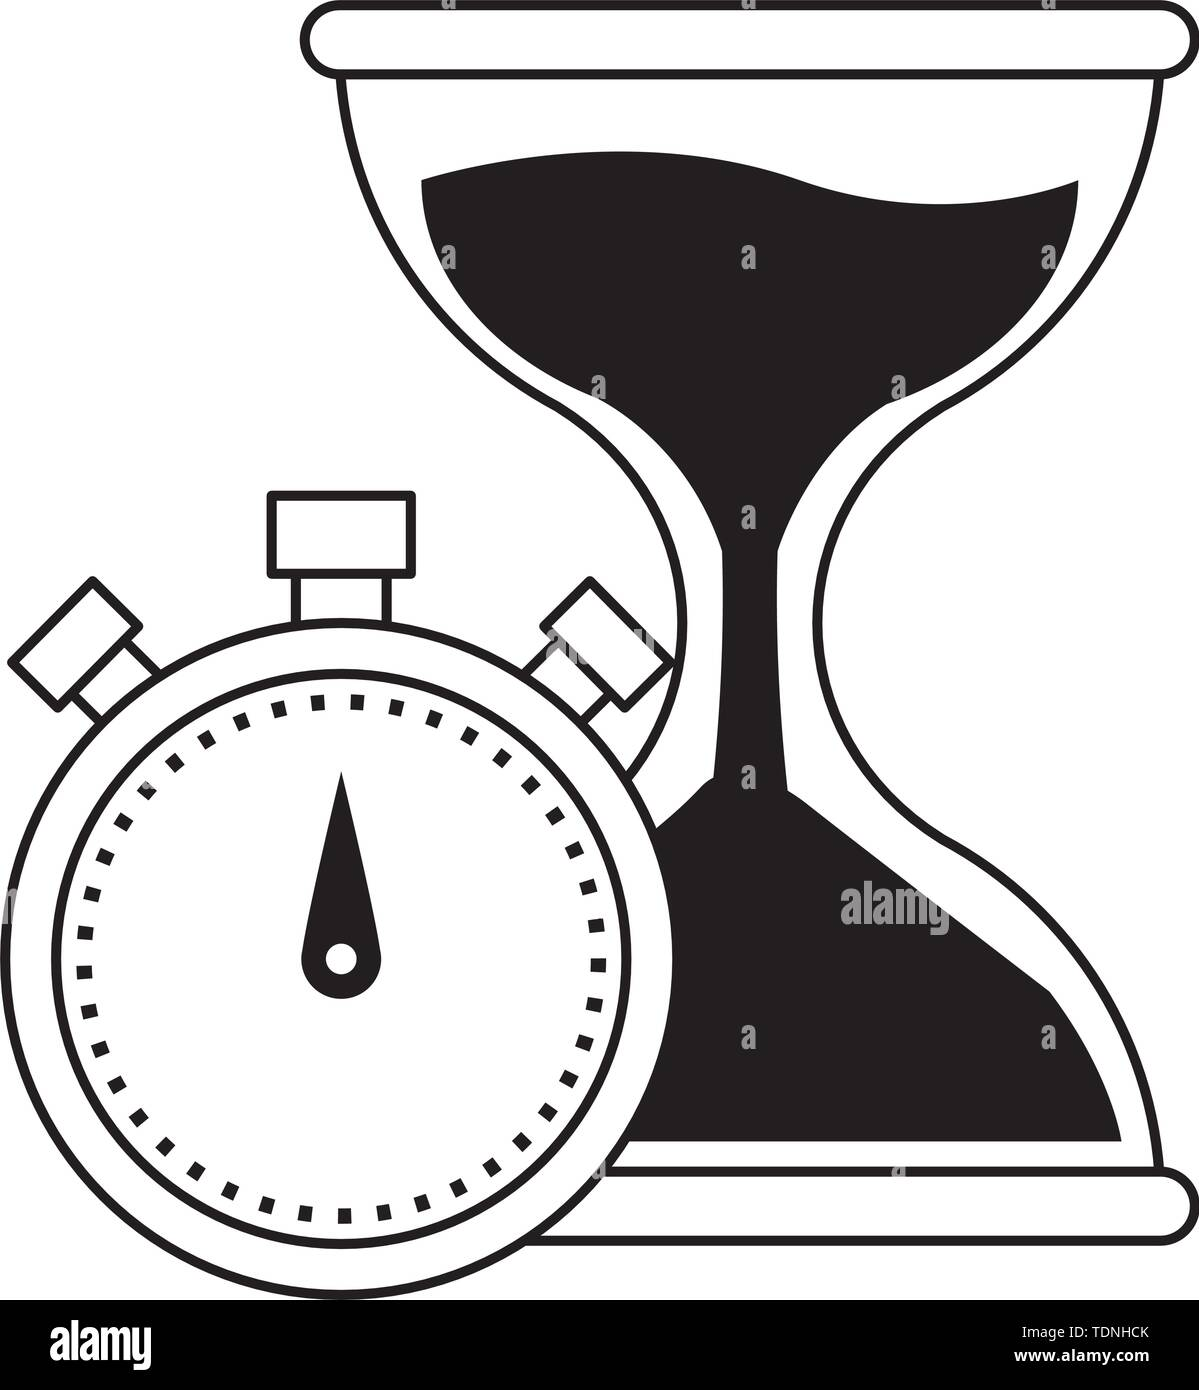 hourglass sand timer with chronometer icon cartoon in black and white vector illustration graphic design - Stock Image